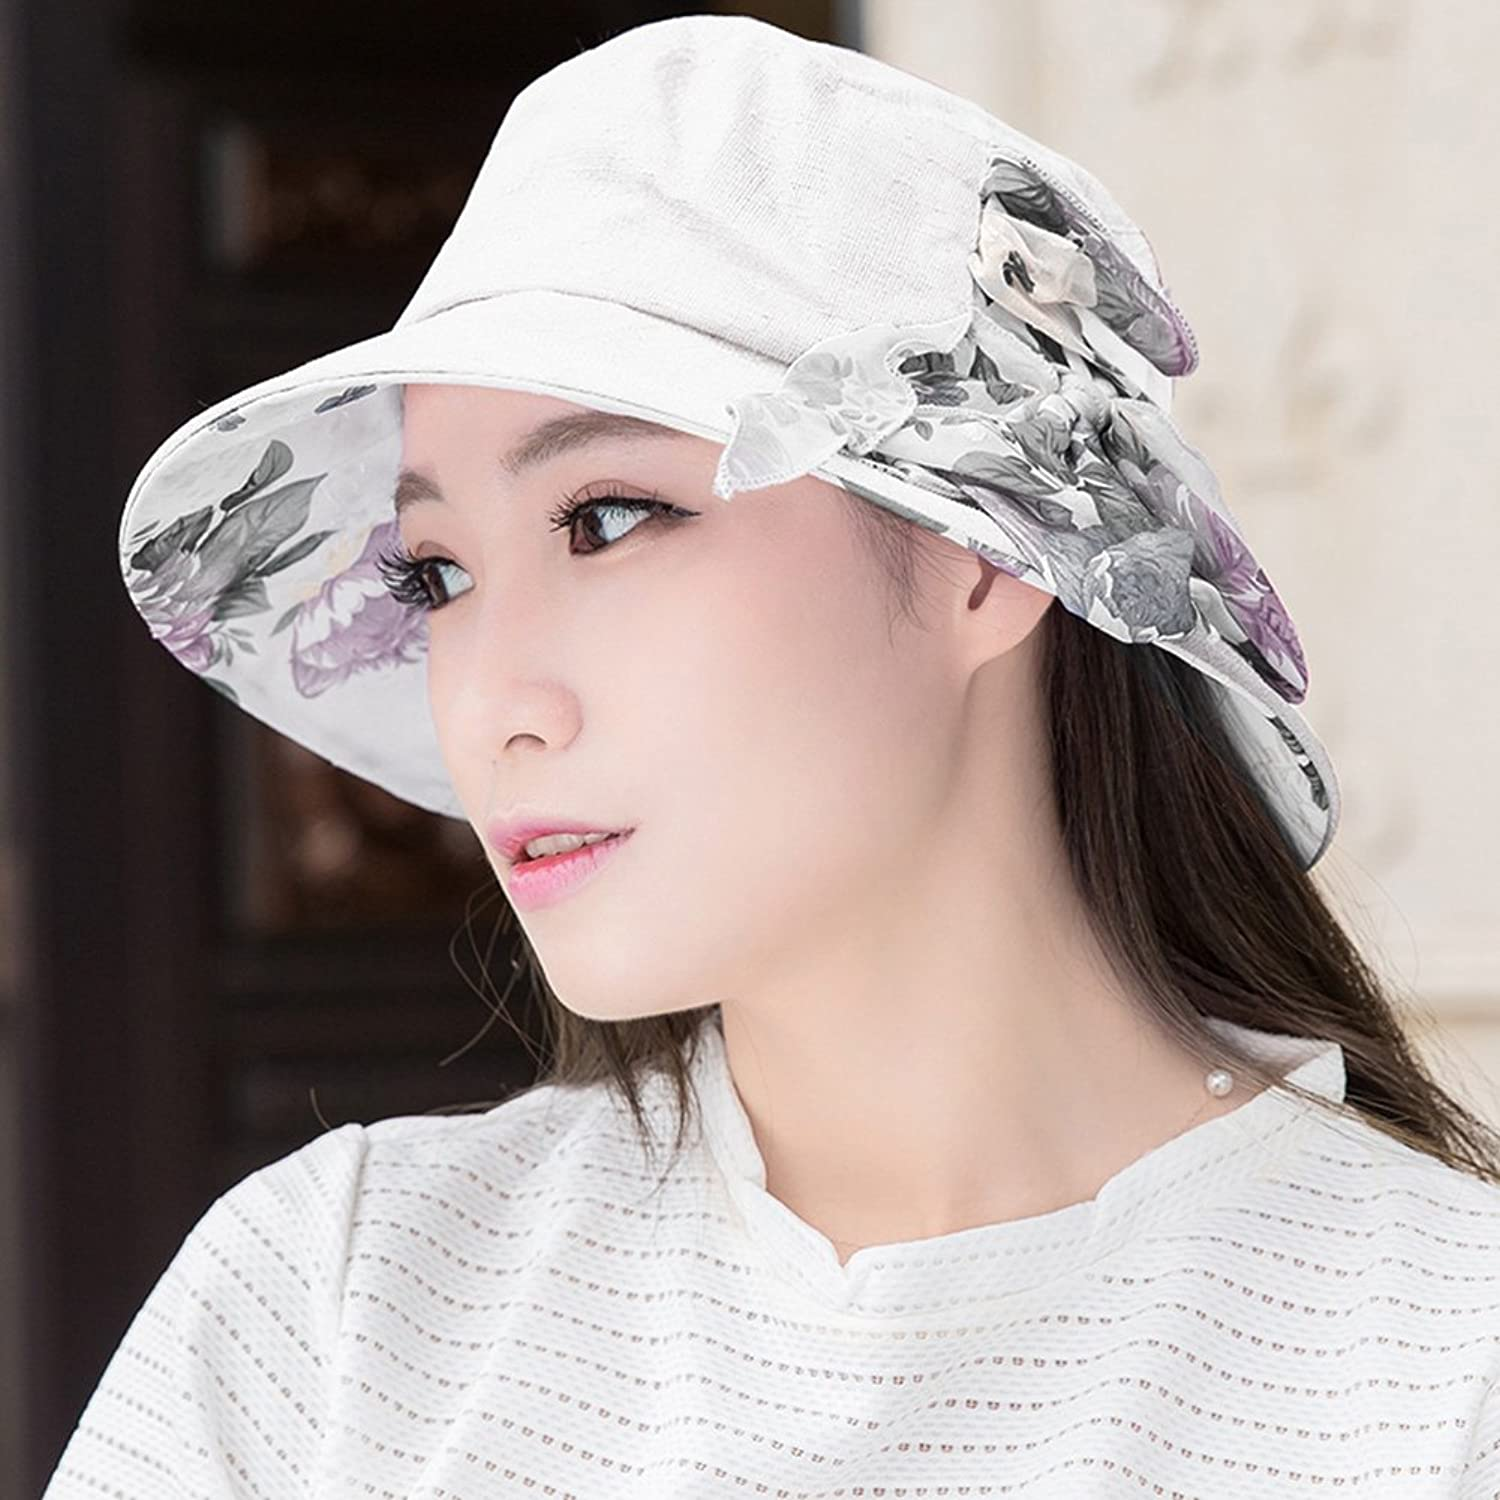 YD Hat Summer Hat, Women Sun Hats All-Match Sunscreen Floppy Foldable Packable, 16 colors Optional    (color   2 )